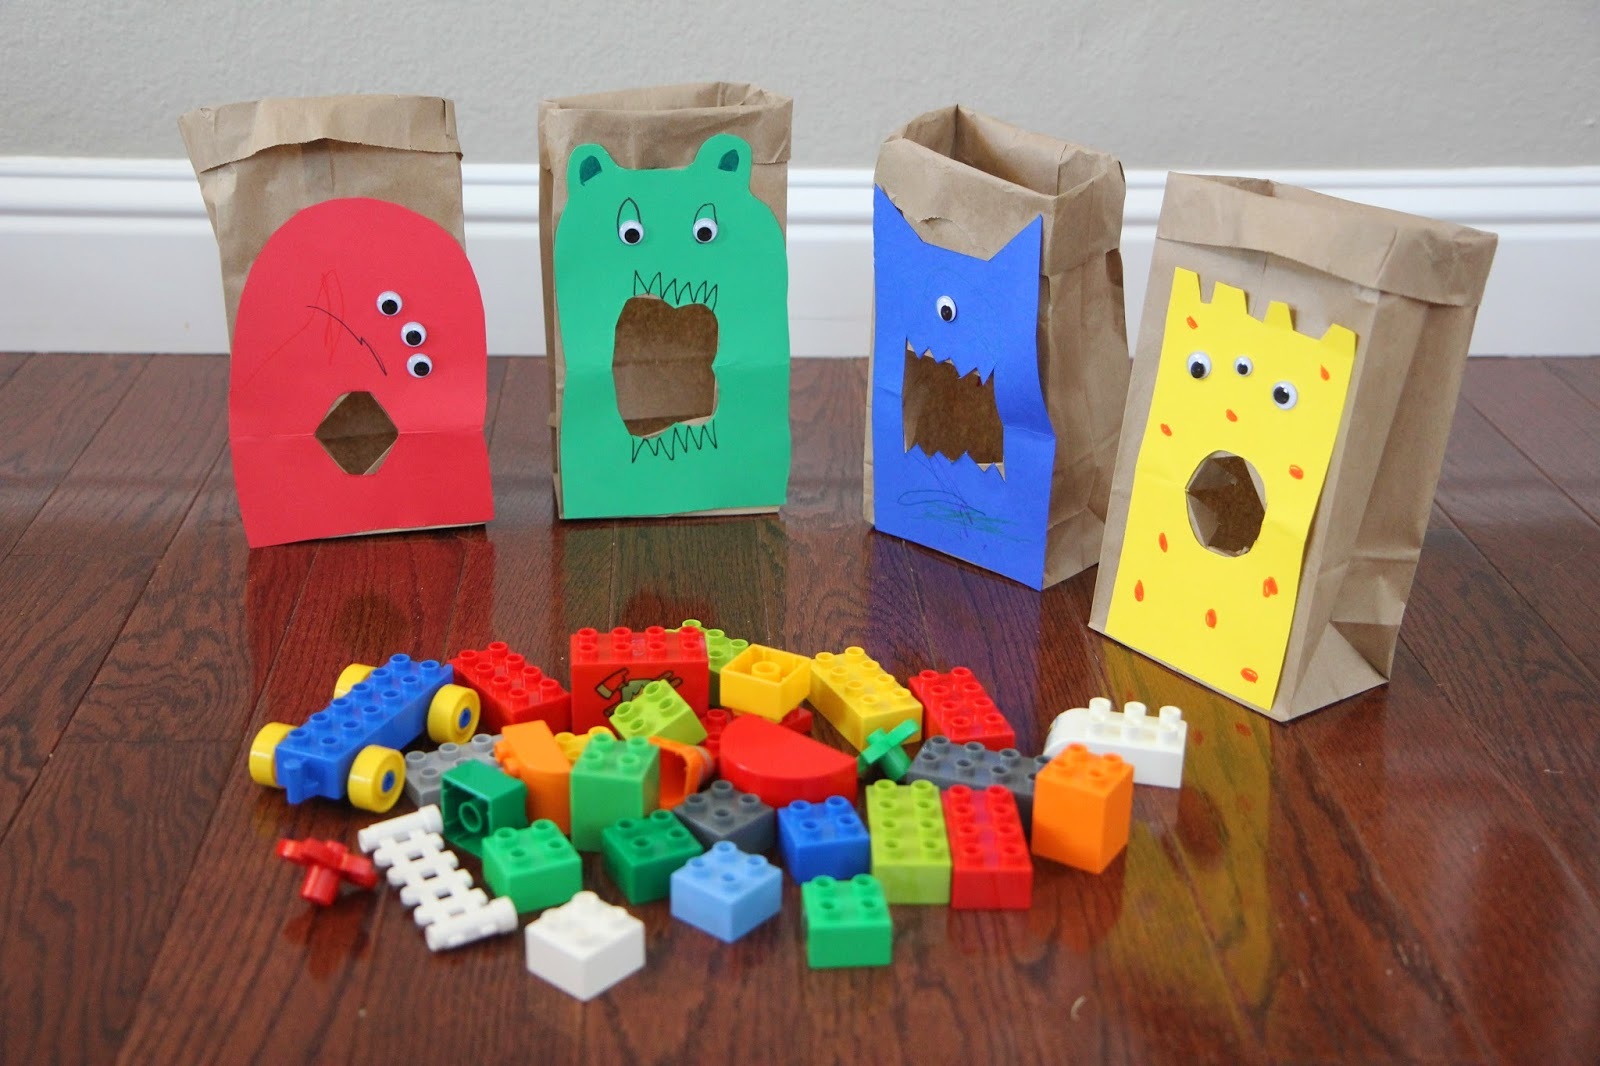 toddler approved feed the lego monsters a sorting and building